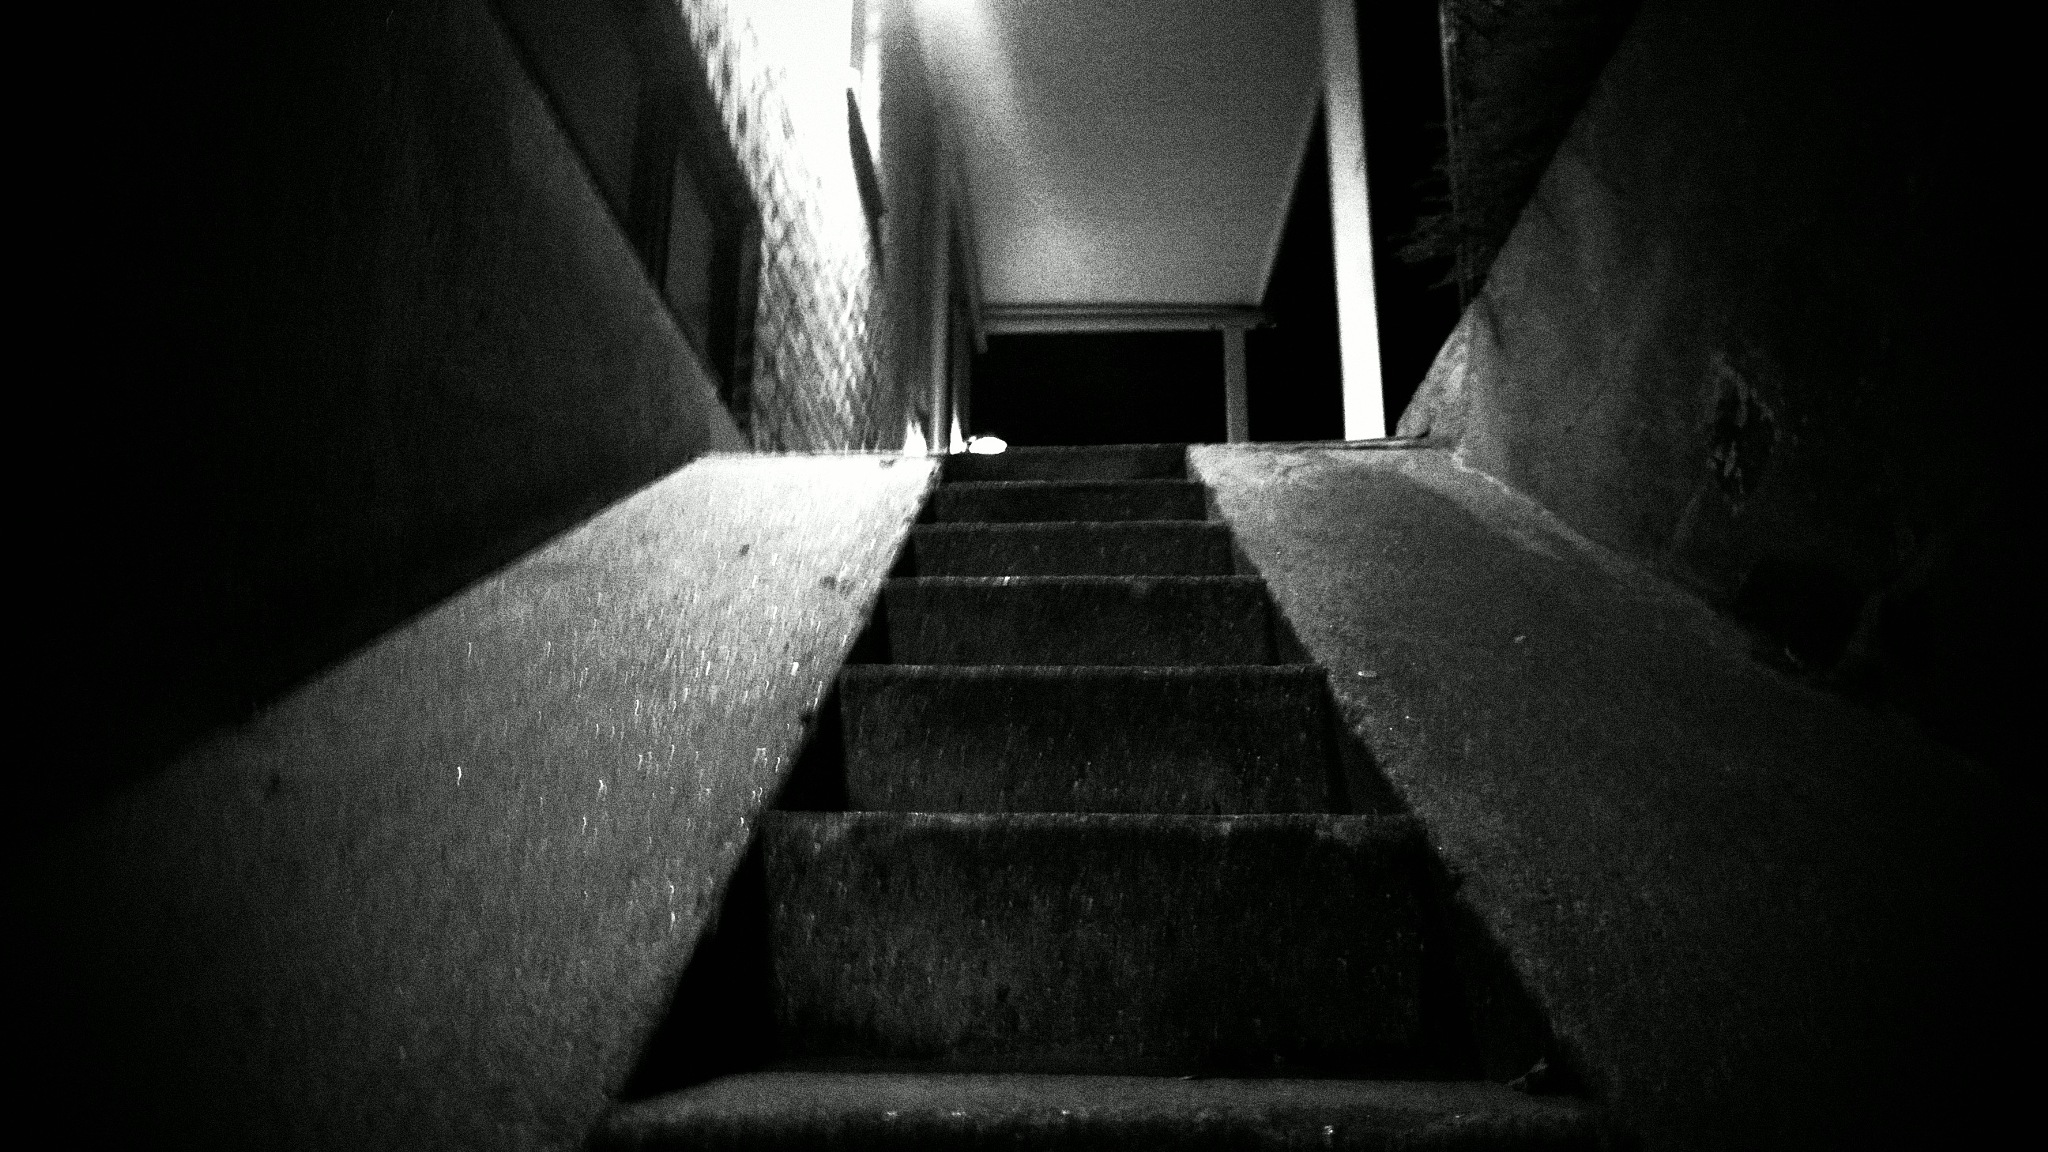 stairway  by Terry Dunn